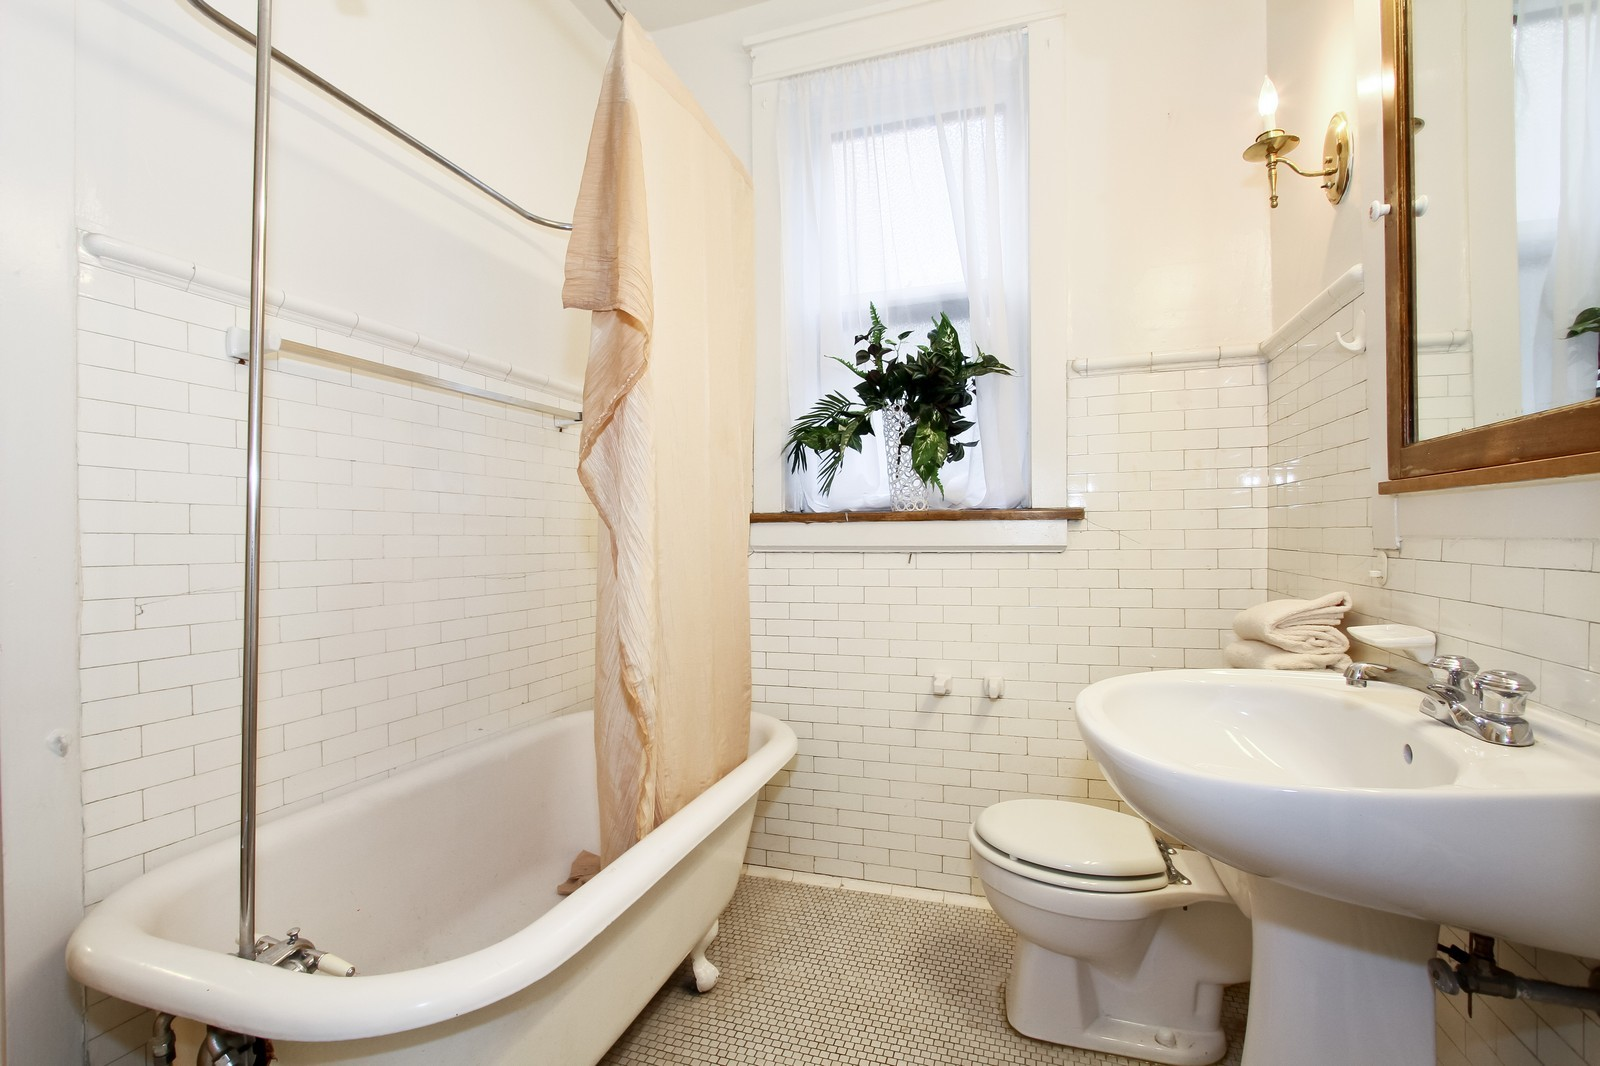 Real Estate Photography - 1648 E 54th St, Chicago, IL, 60615 - Bathroom